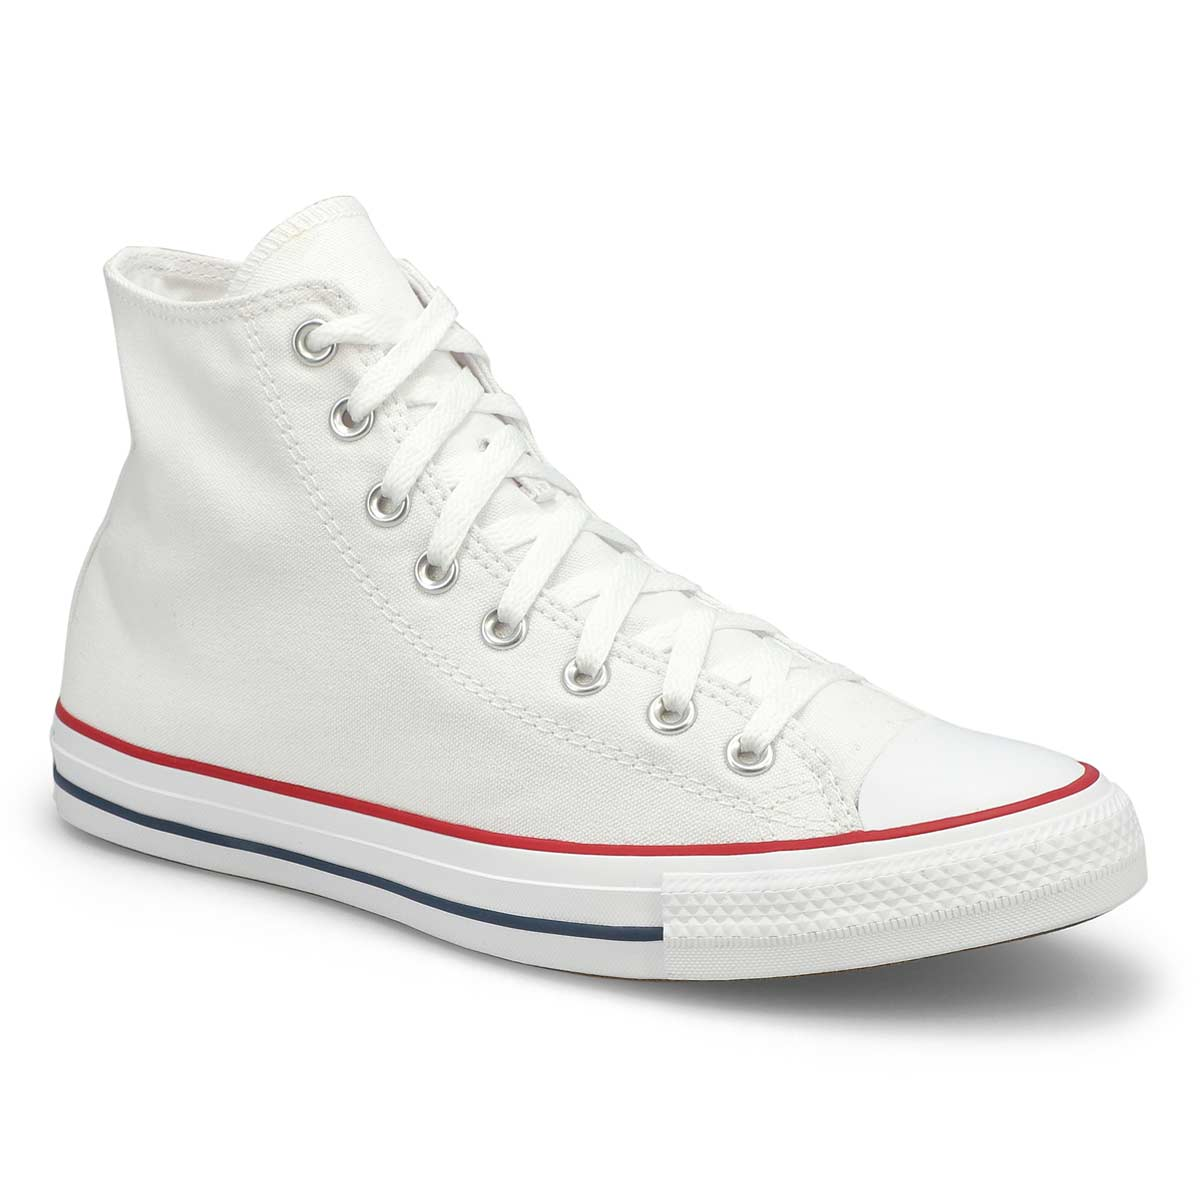 Men's CHUCK TAYLOR CORE HI white canvas sneakers